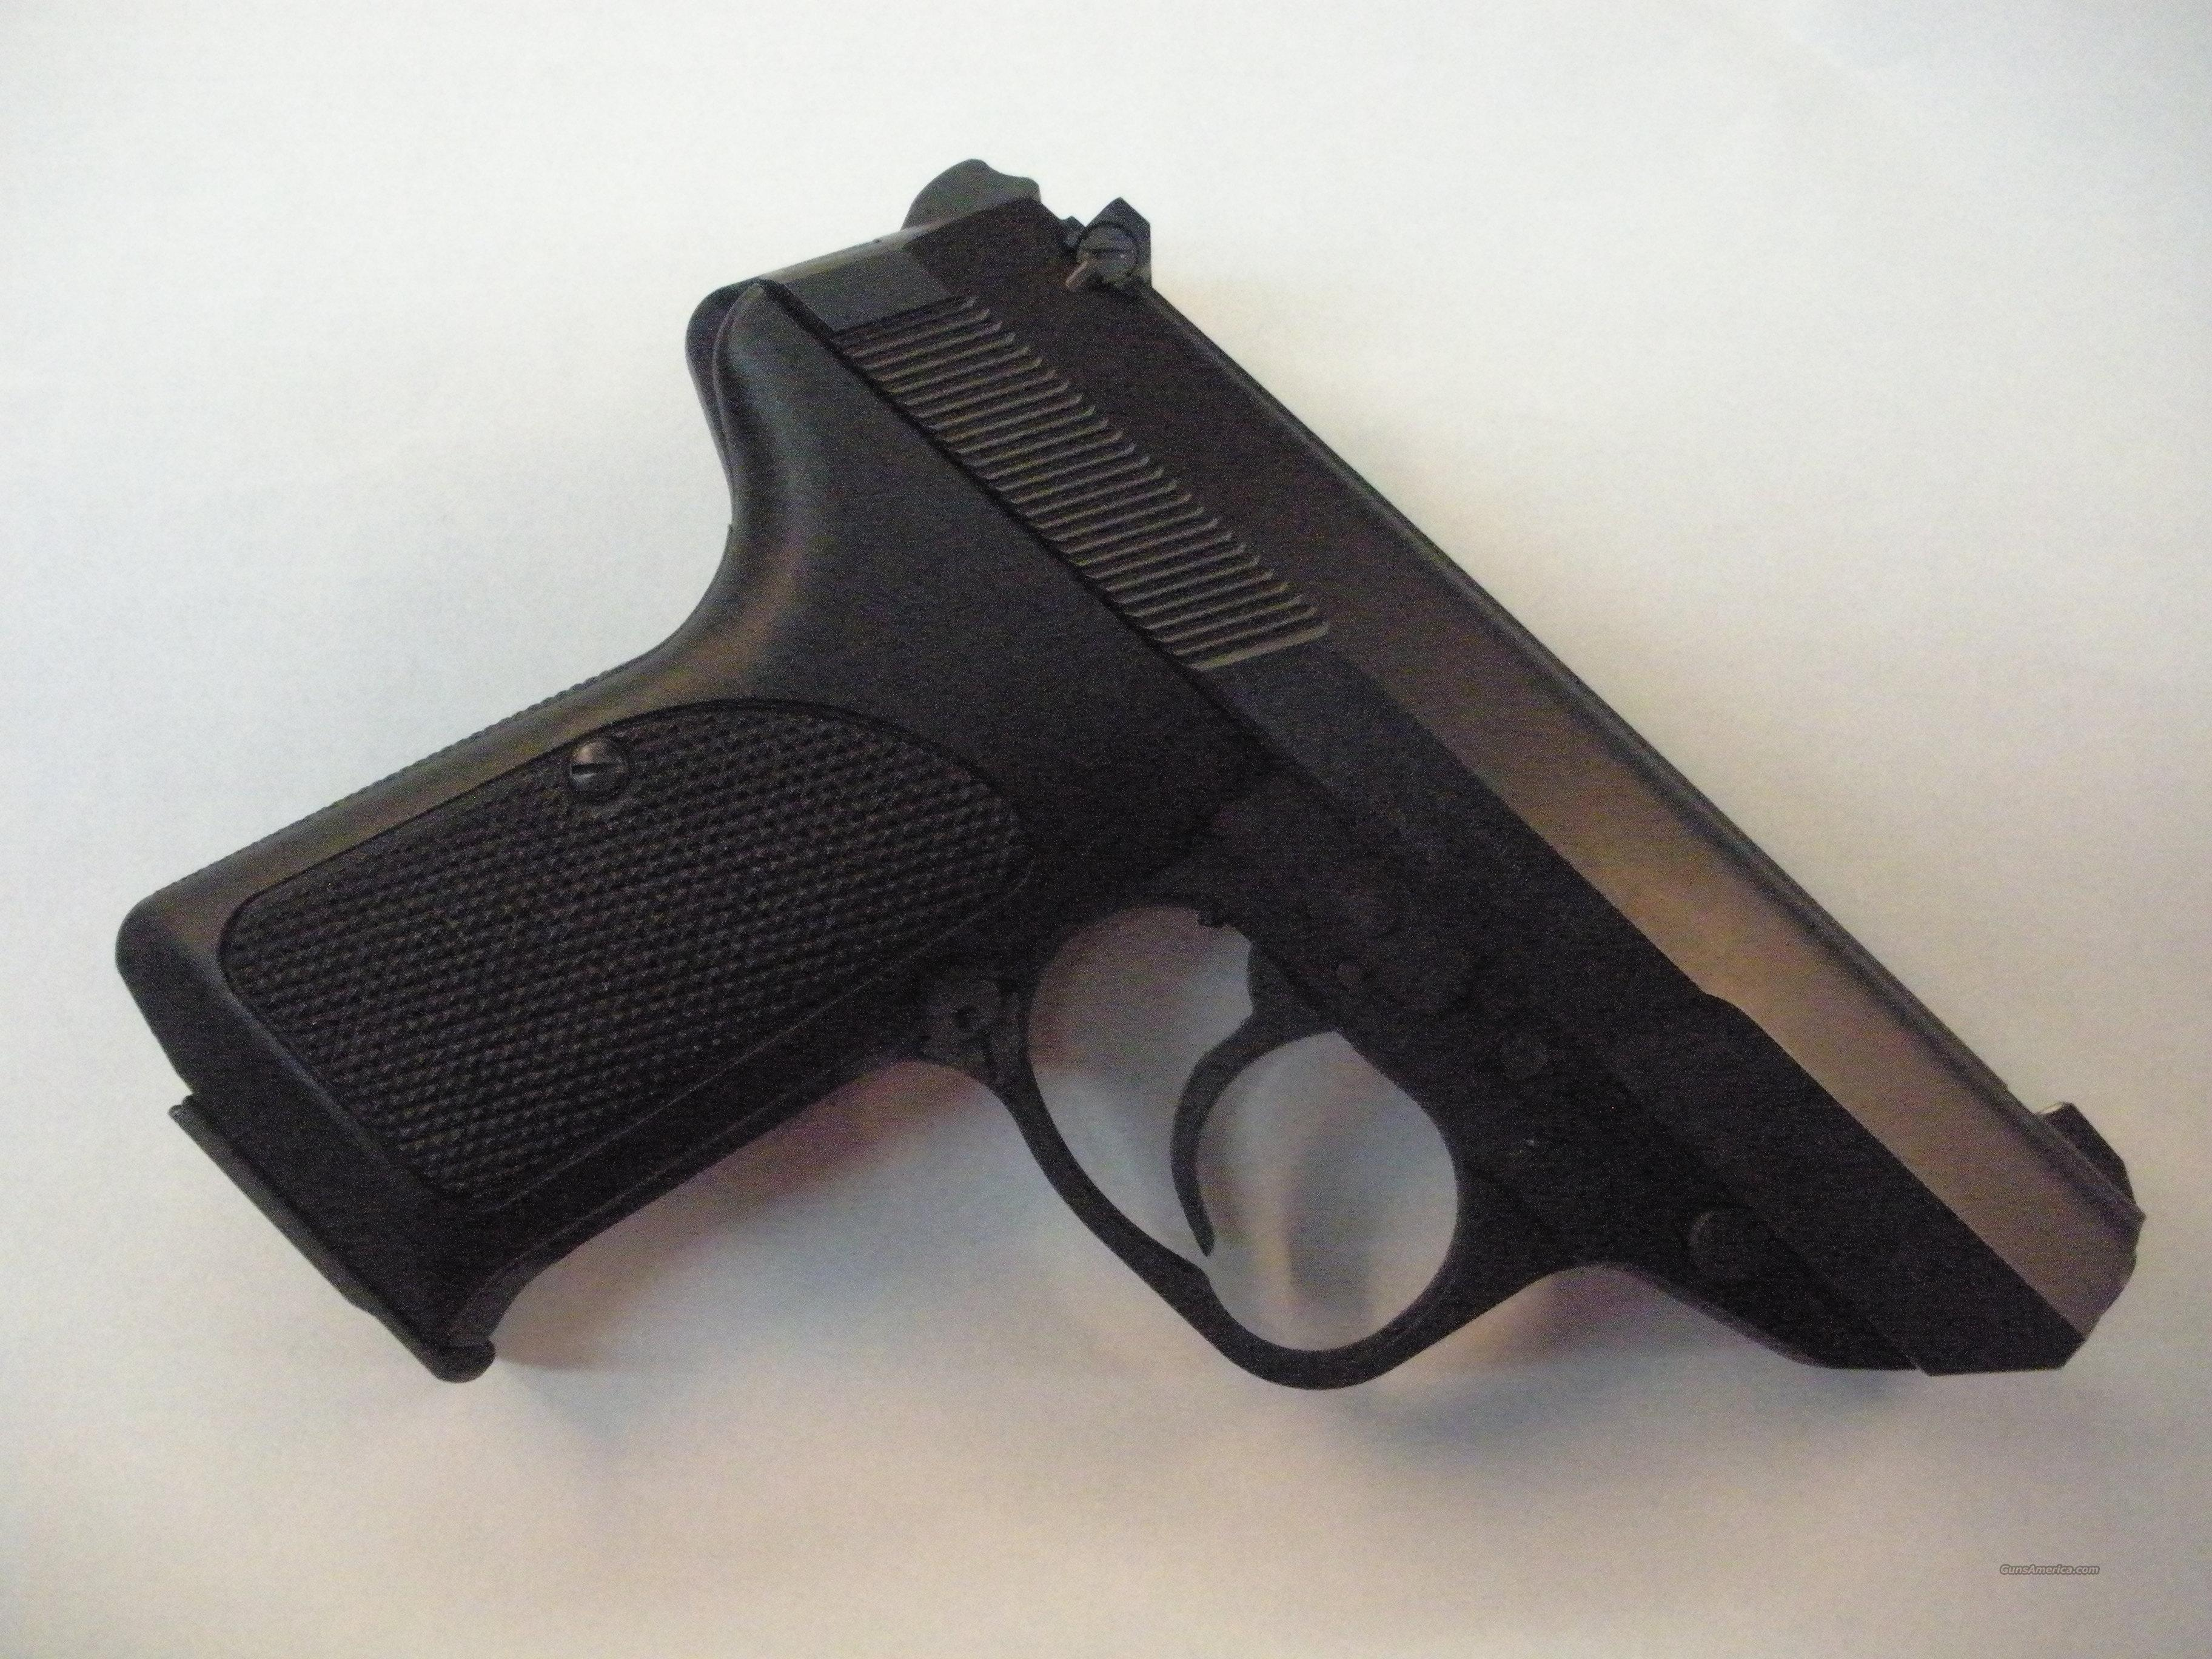 Walther P5 Compact  Guns > Pistols > Walther Pistols > Post WWII > P99/PPQ